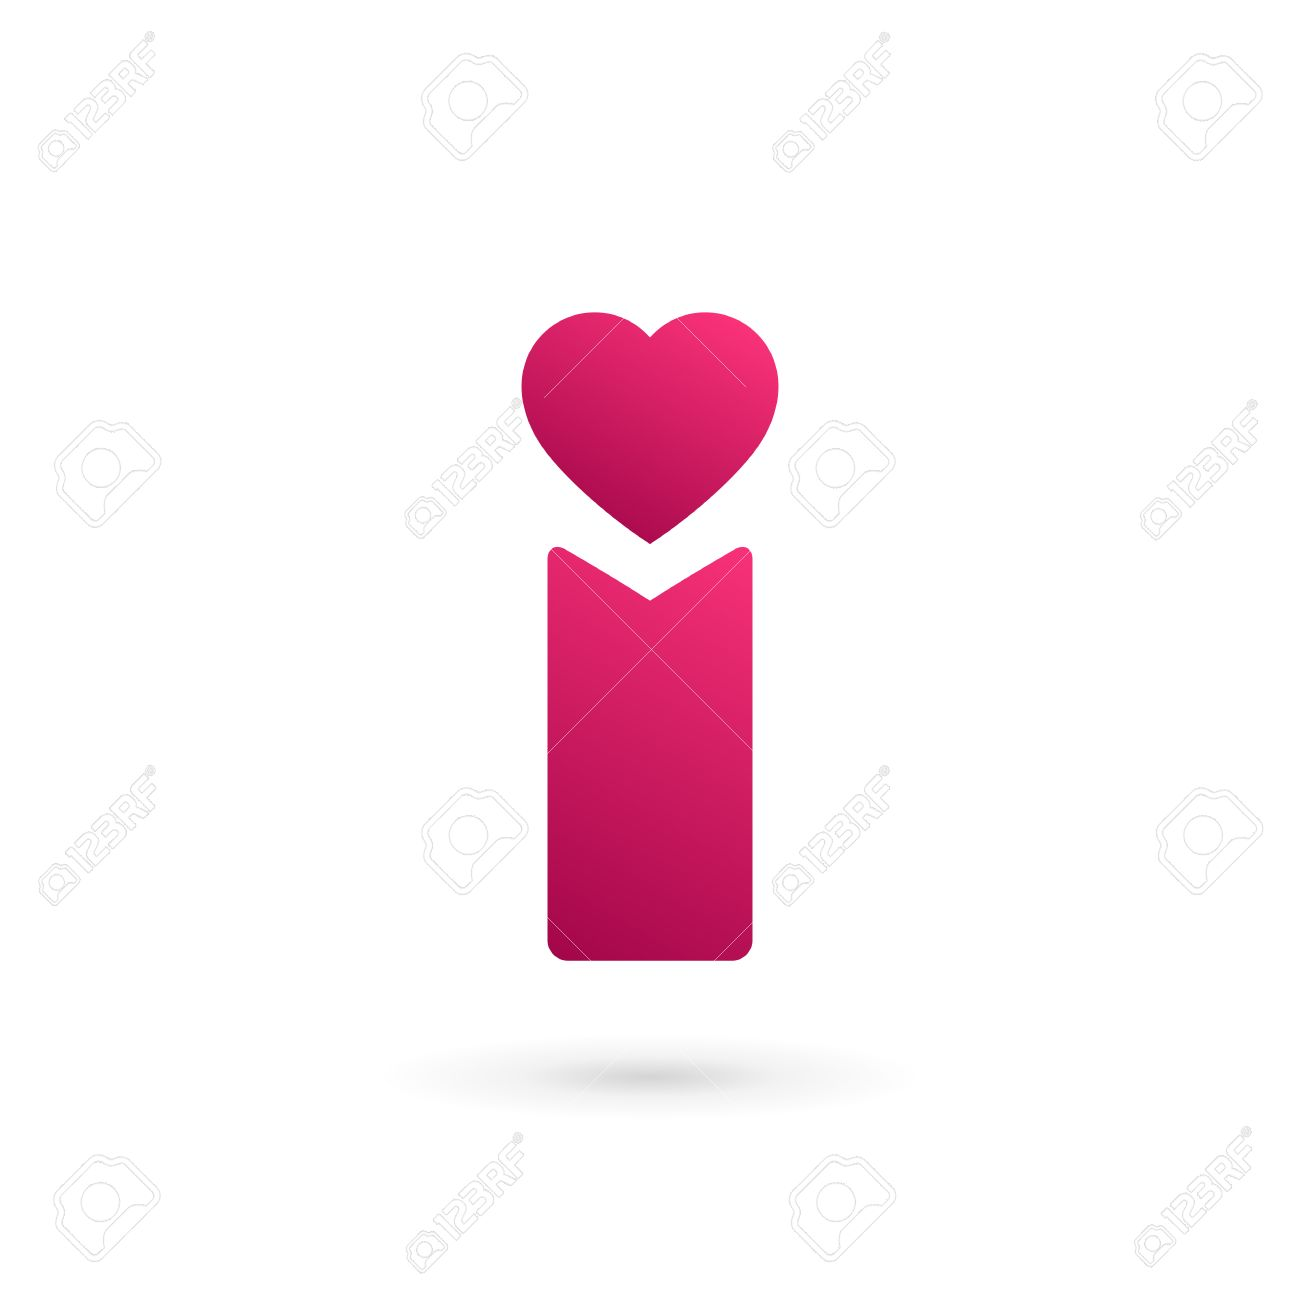 Letter I heart logo icon design template elements